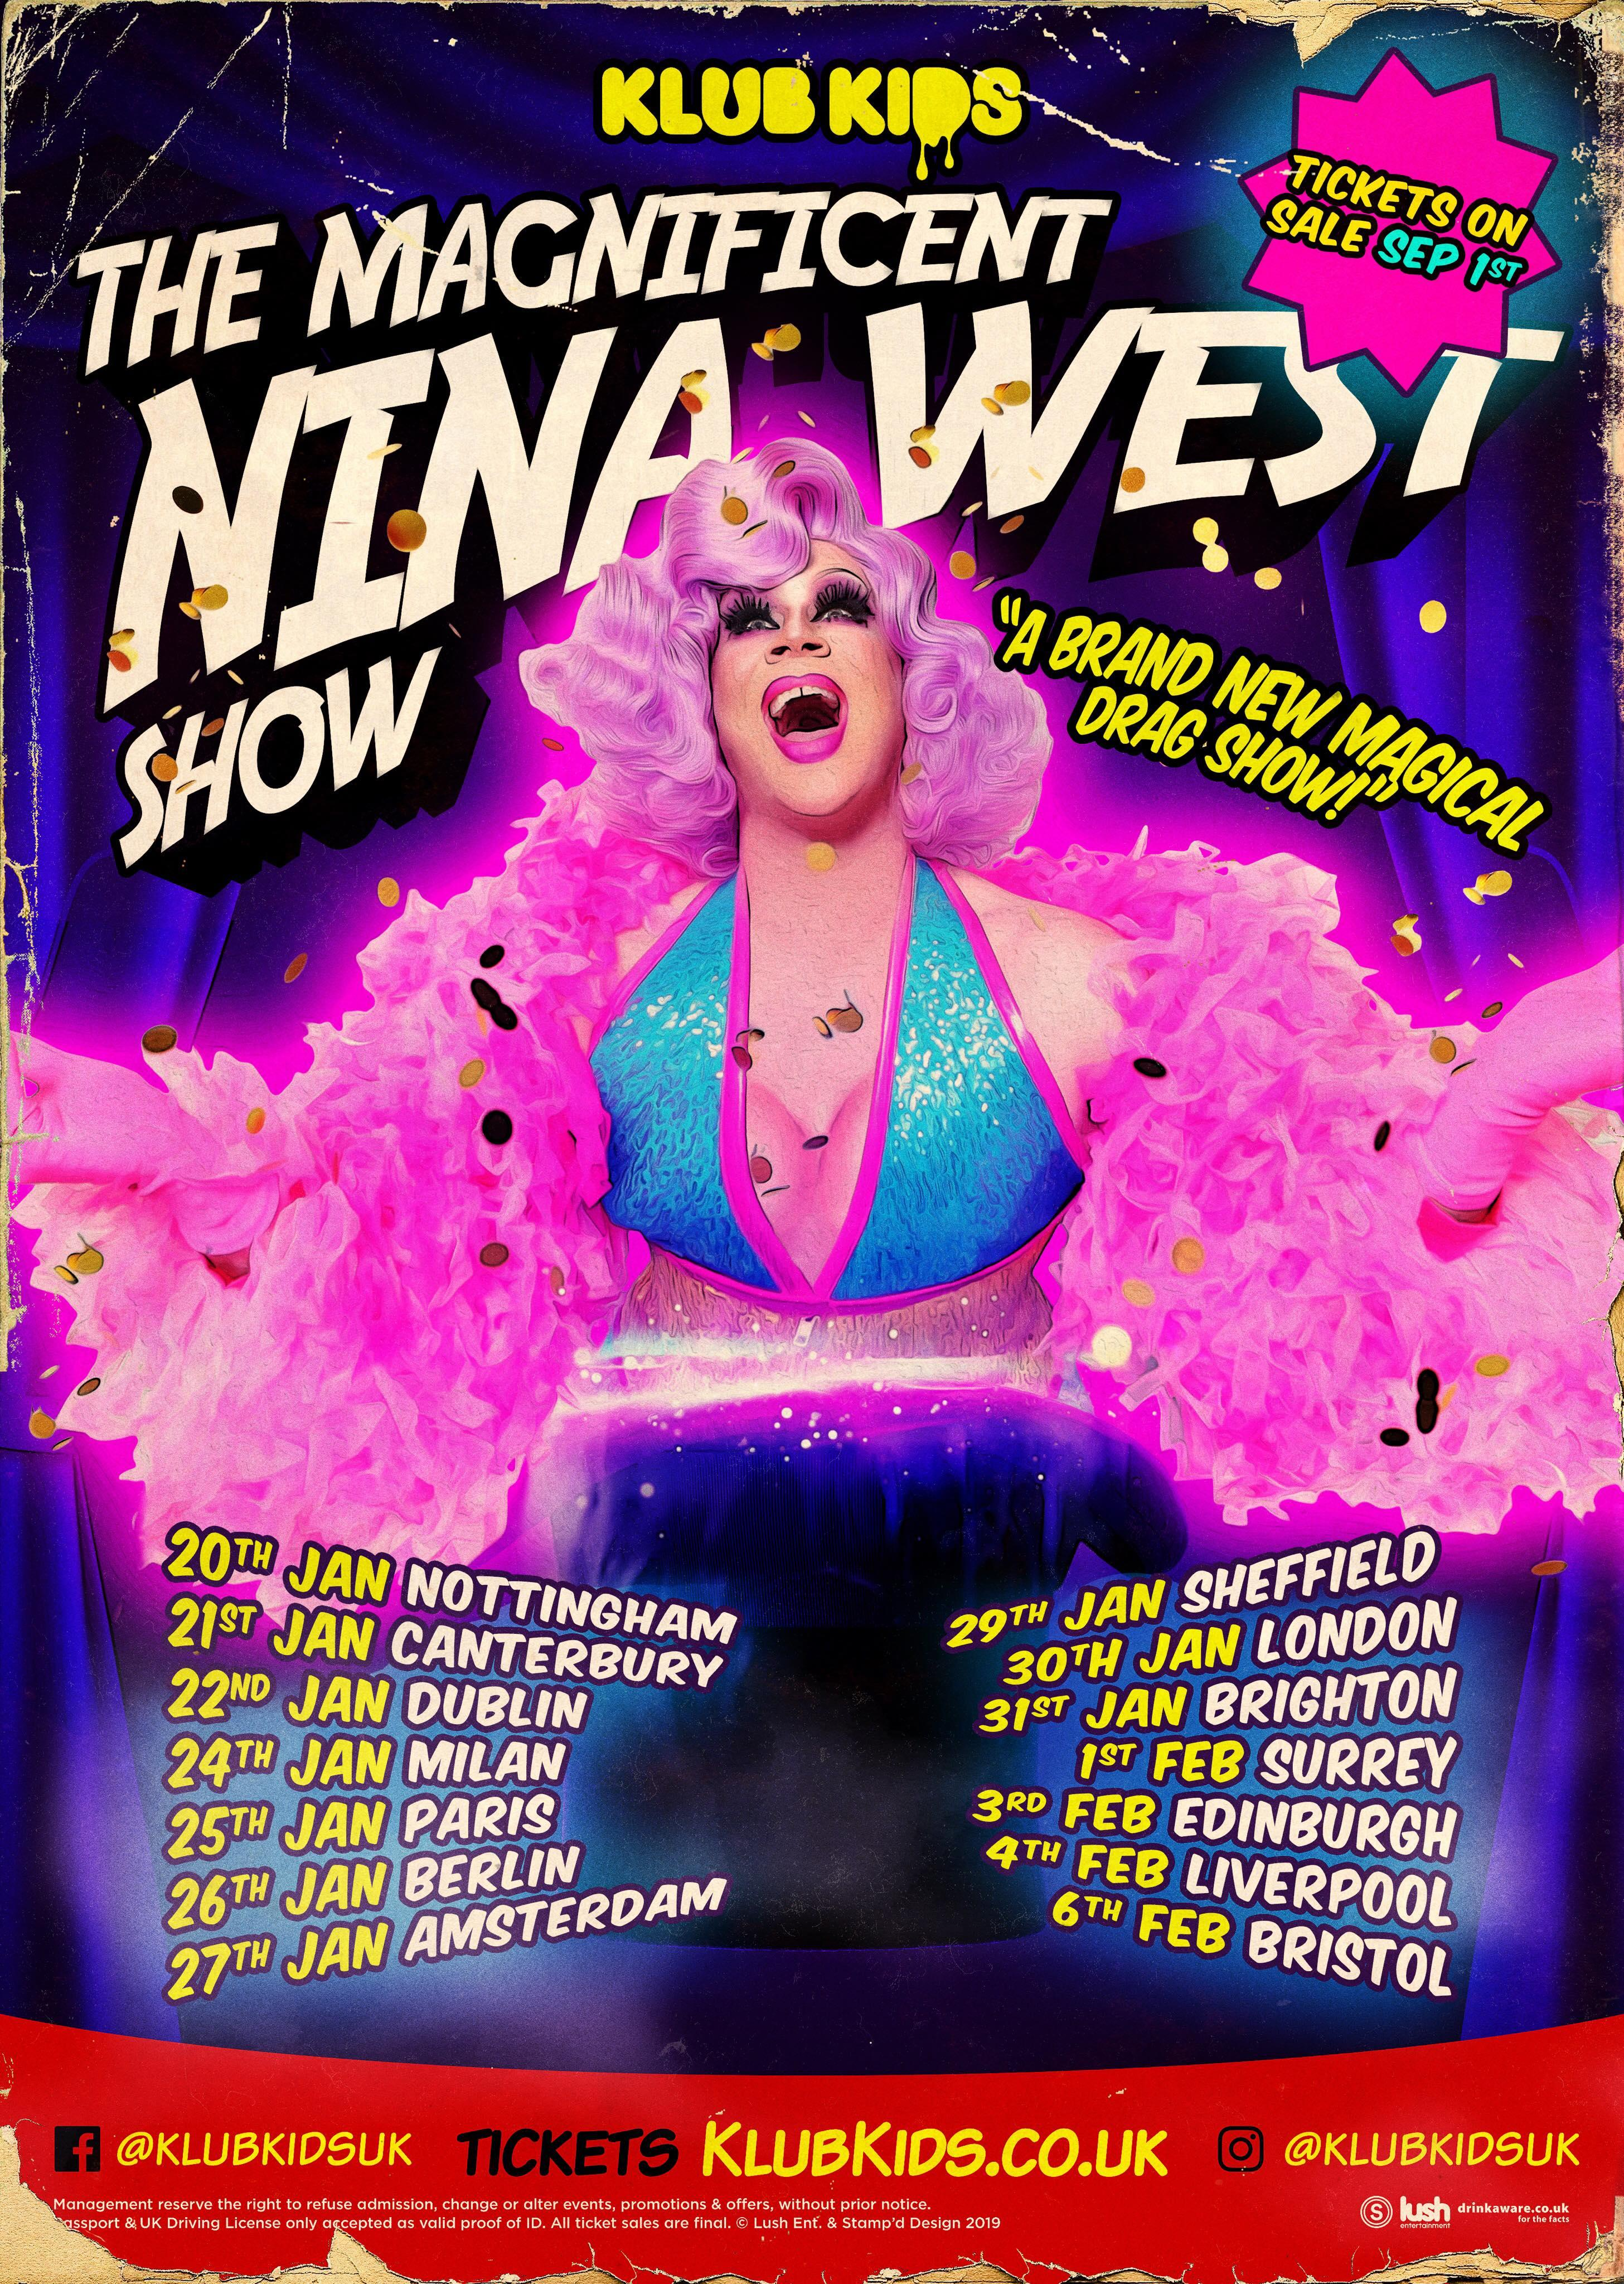 KLUB KIDS Edinburgh presents THE MAGNIFICENT NINA WEST SHOW (ages 14+)